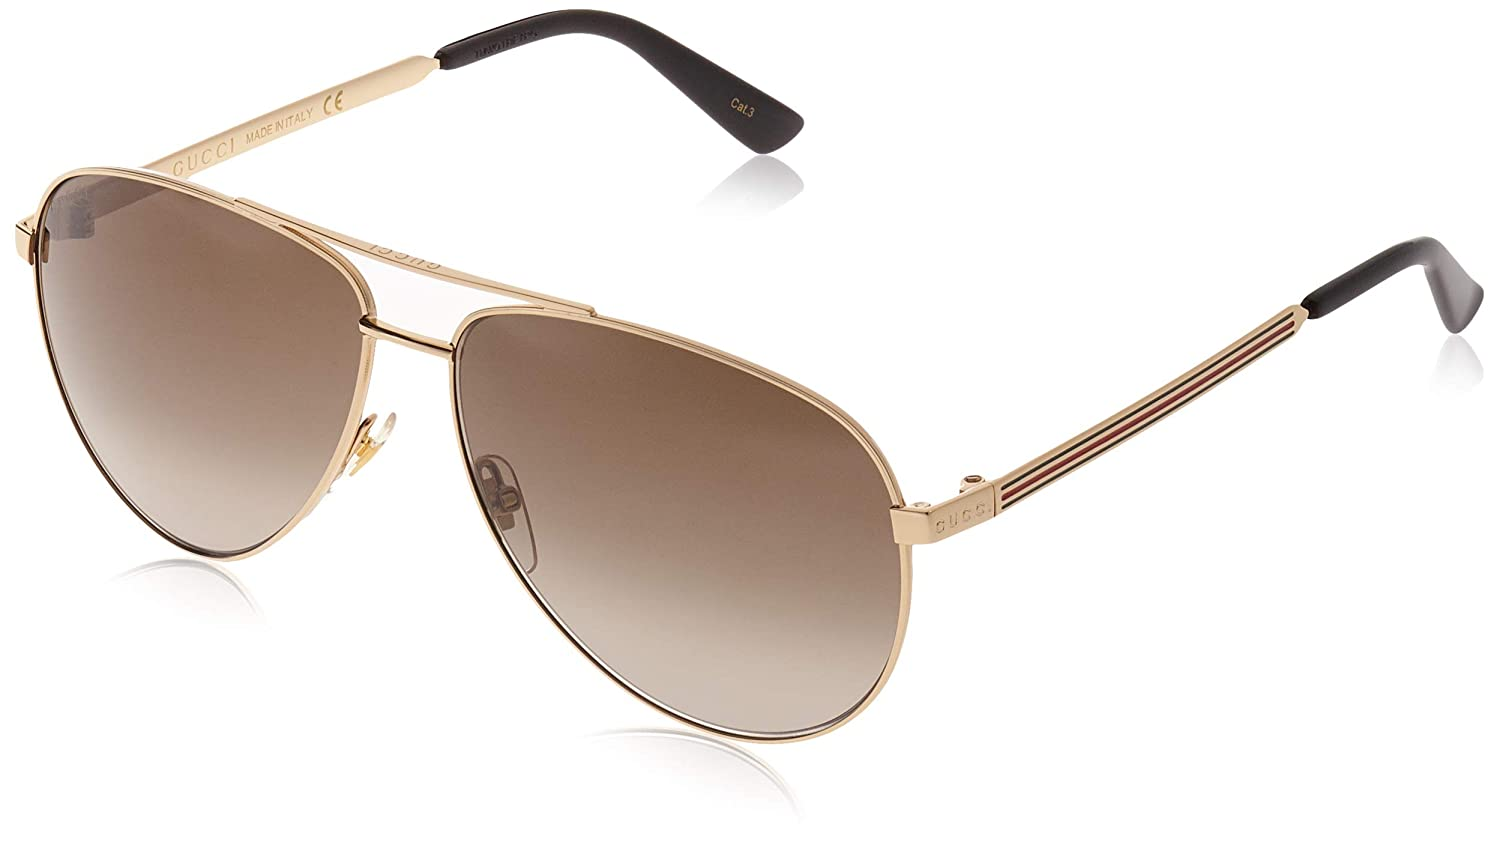 7acb8494792a9 Amazon.com  Sunglasses Gucci GG 0137 S- 001 GOLD BROWN  Clothing